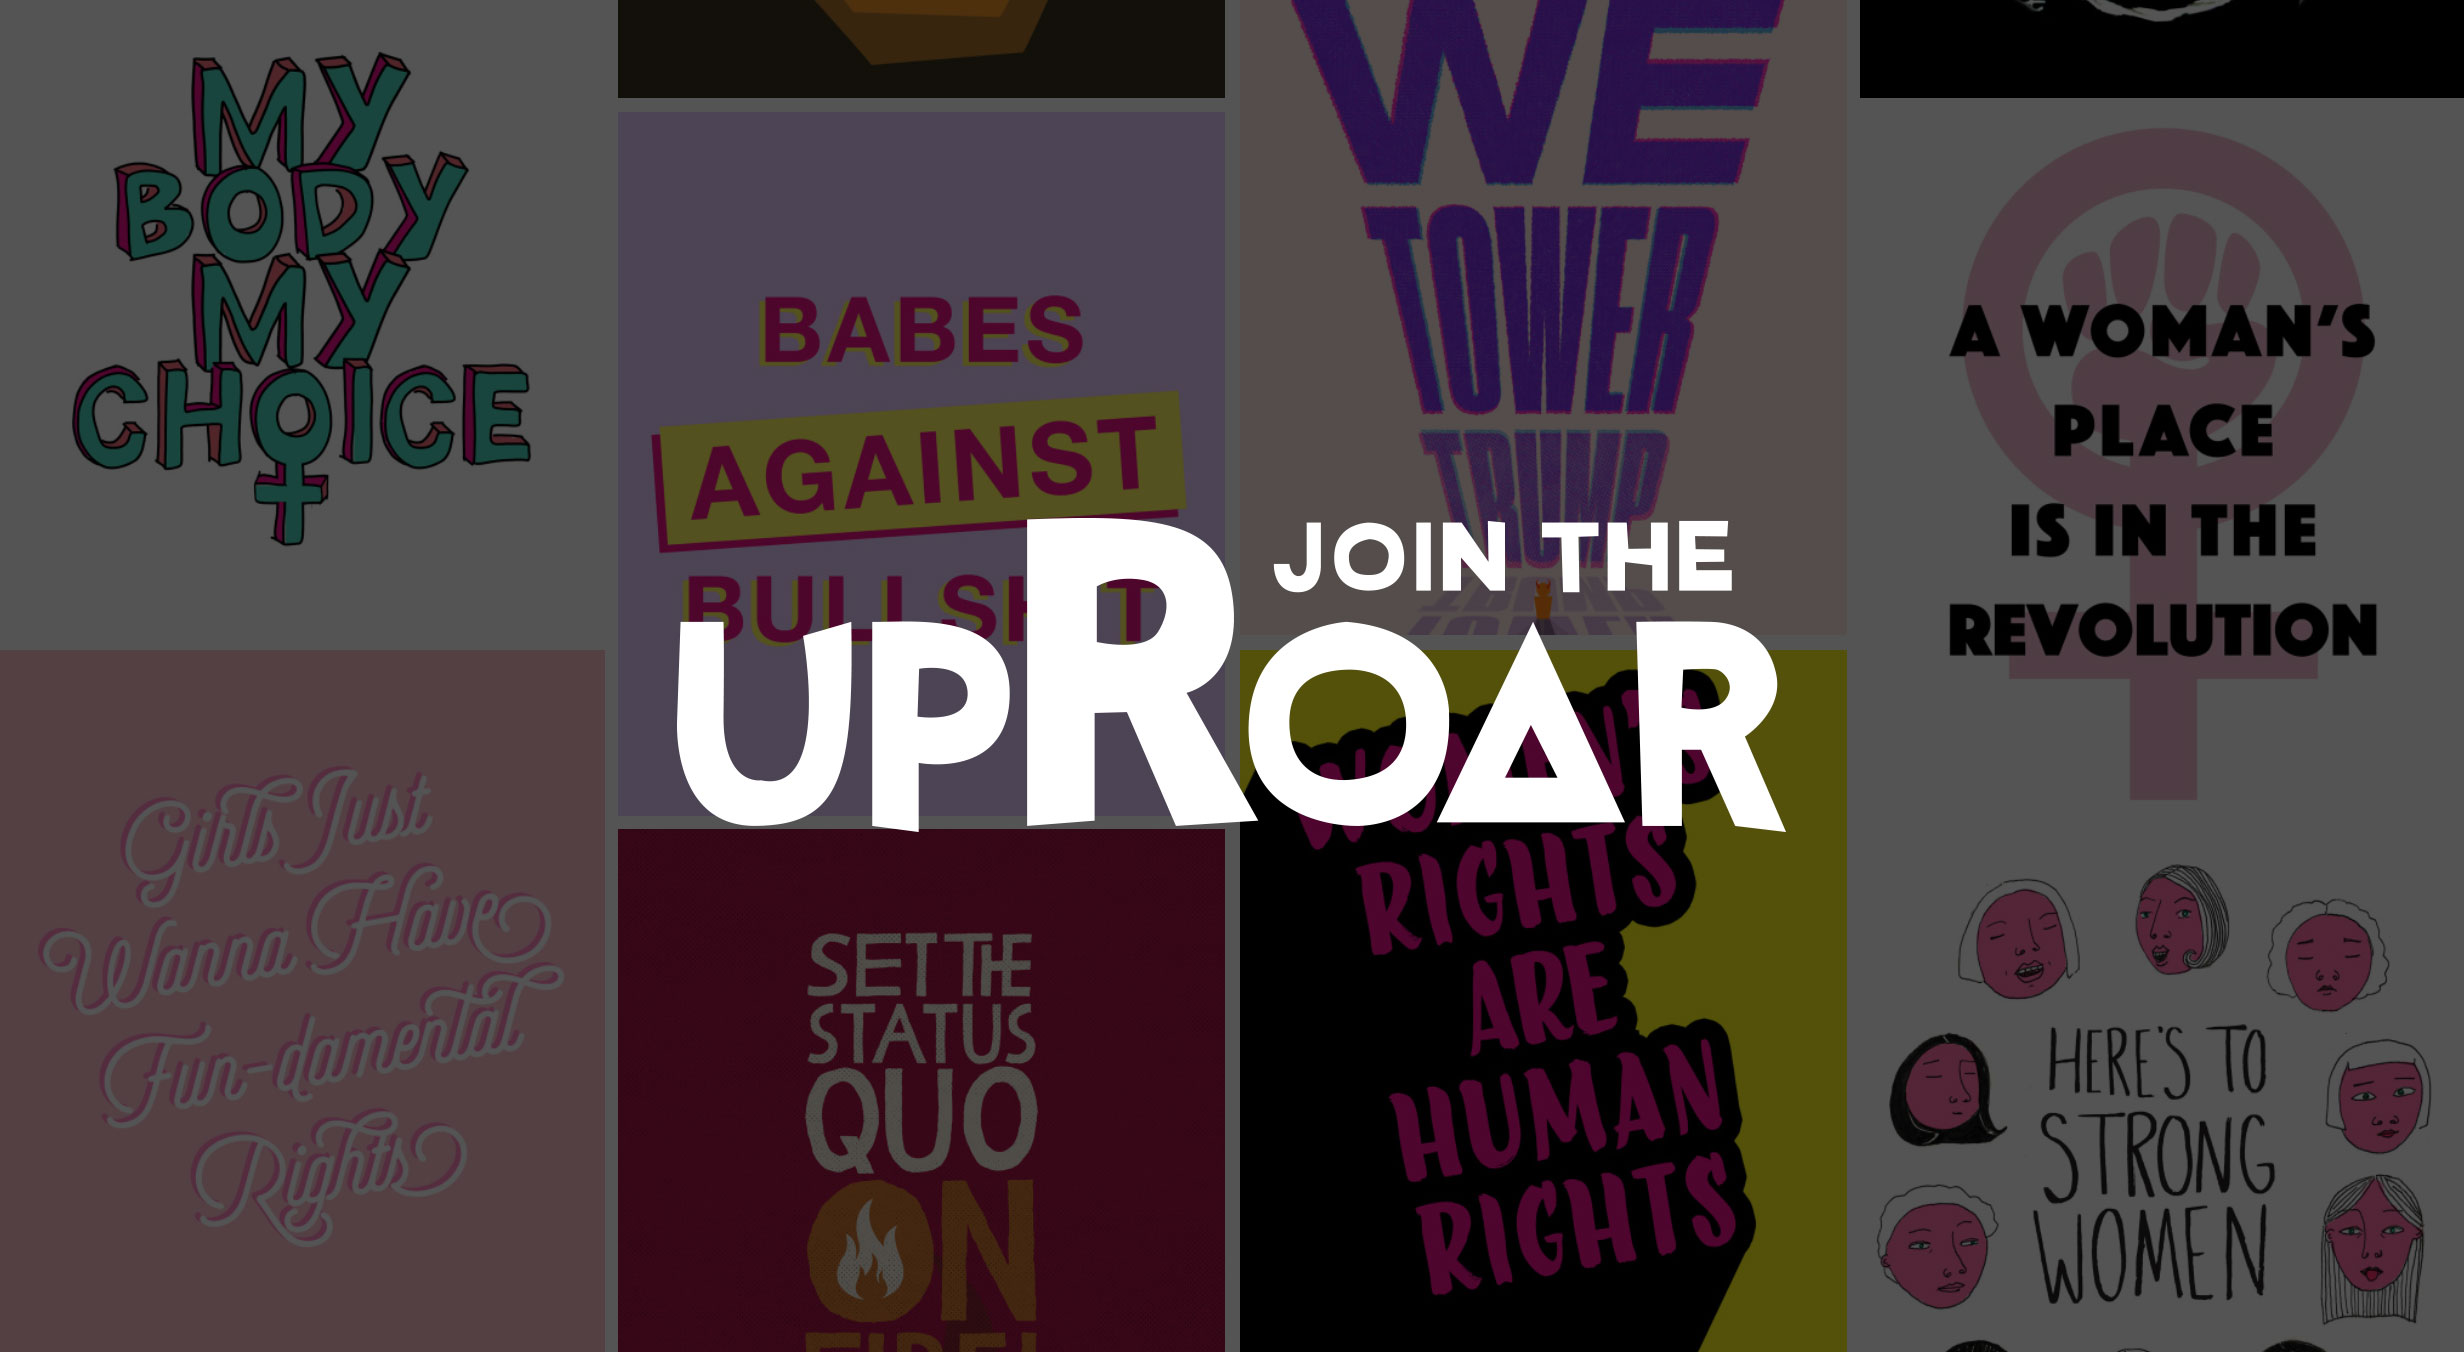 Join The Uproar